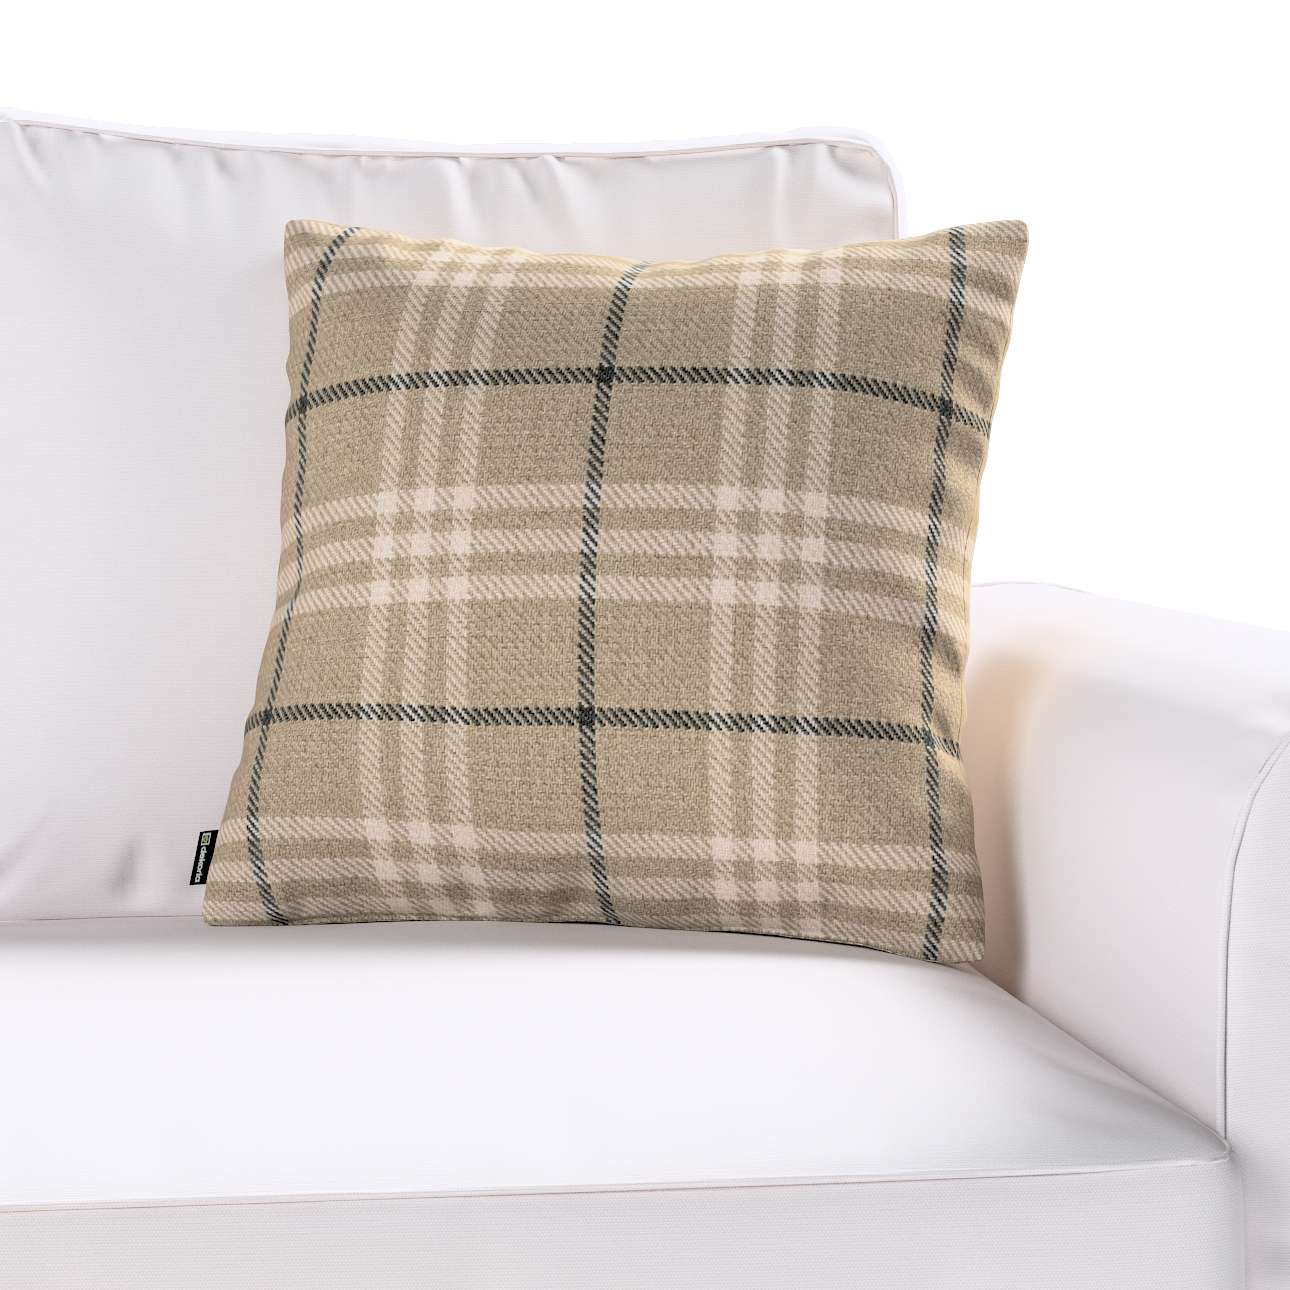 Kinga cushion cover 43 × 43 cm (17 × 17 inch) in collection Edinburgh, fabric: 703-11